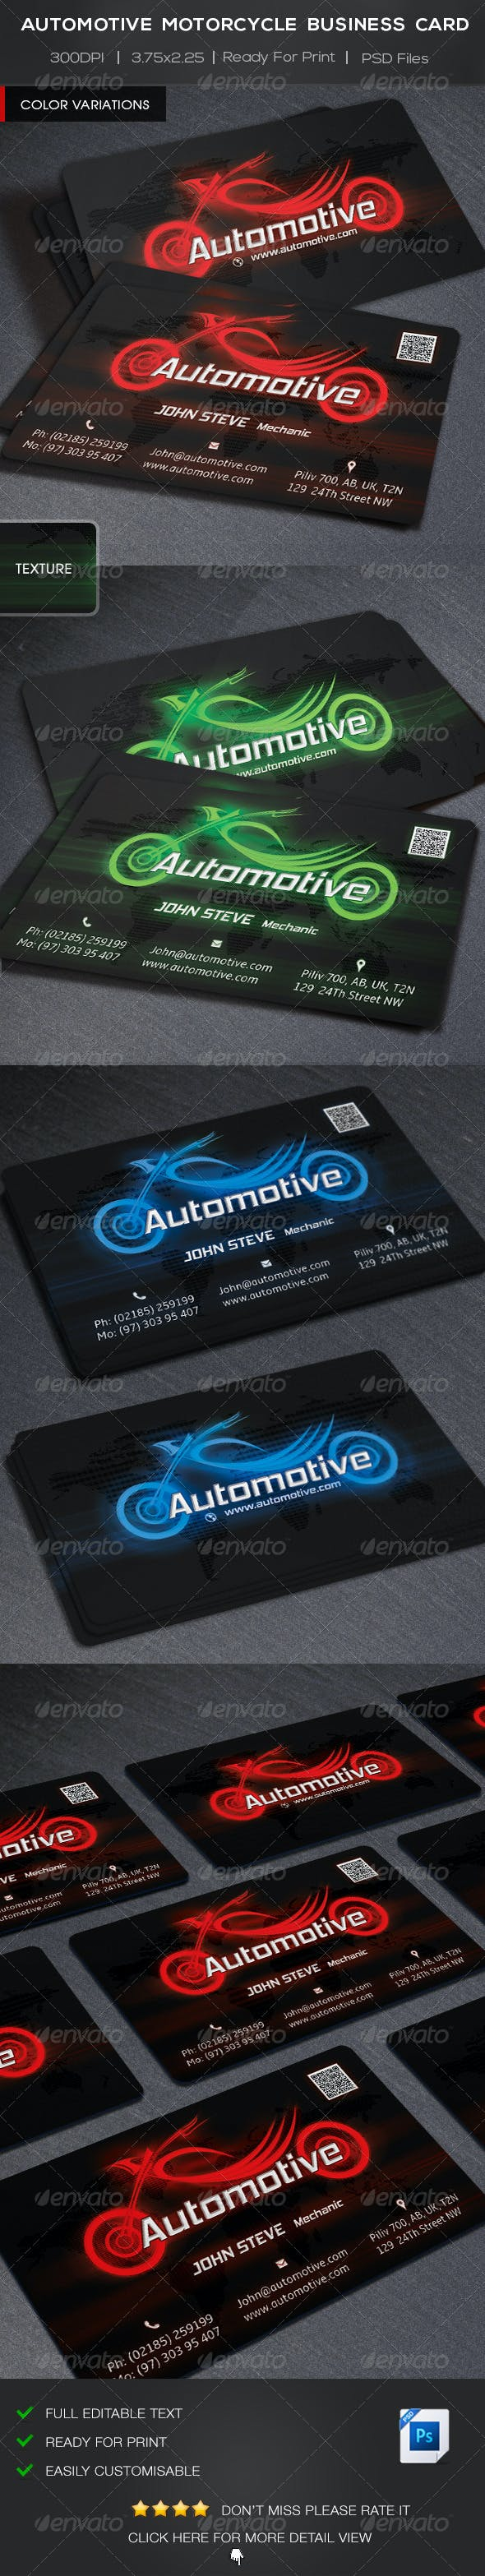 Automotive Motorcycle Business Card By Oksrider Graphicriver